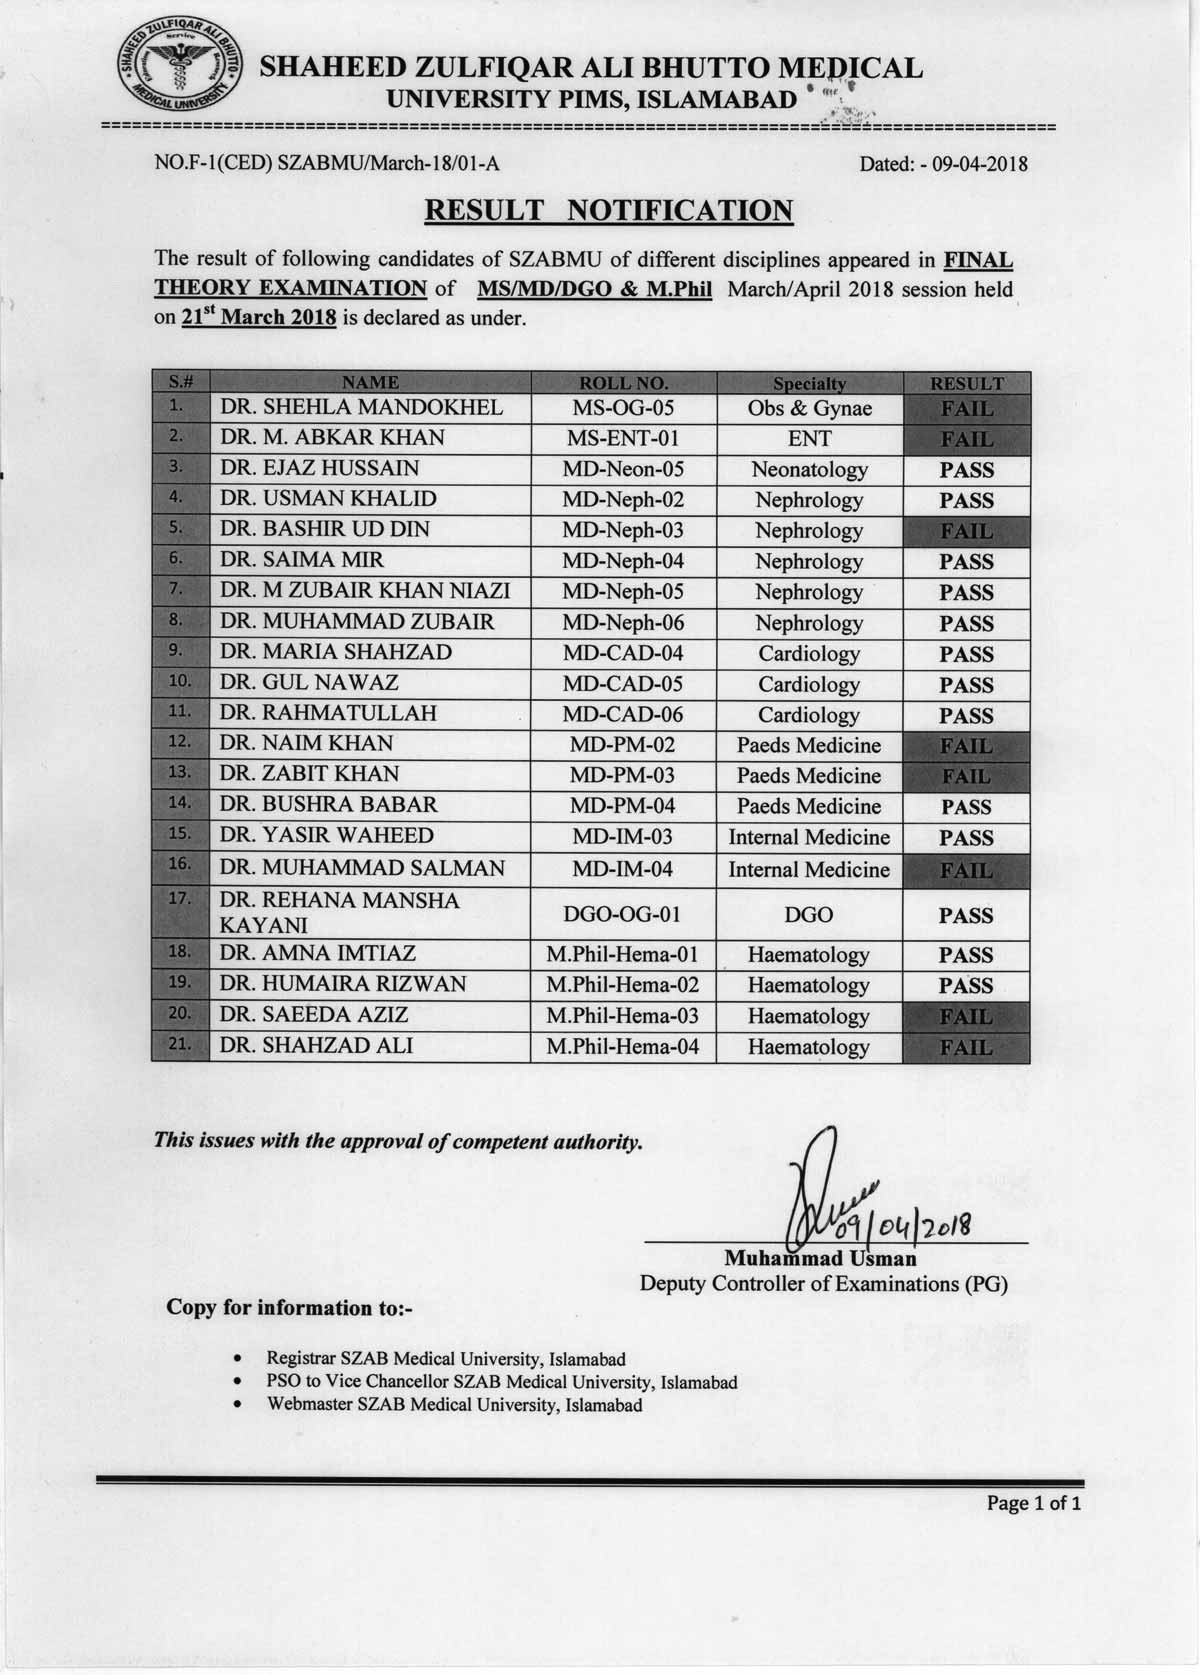 Result Notification of MS/MD/DGO/MPHIL Final theory examination